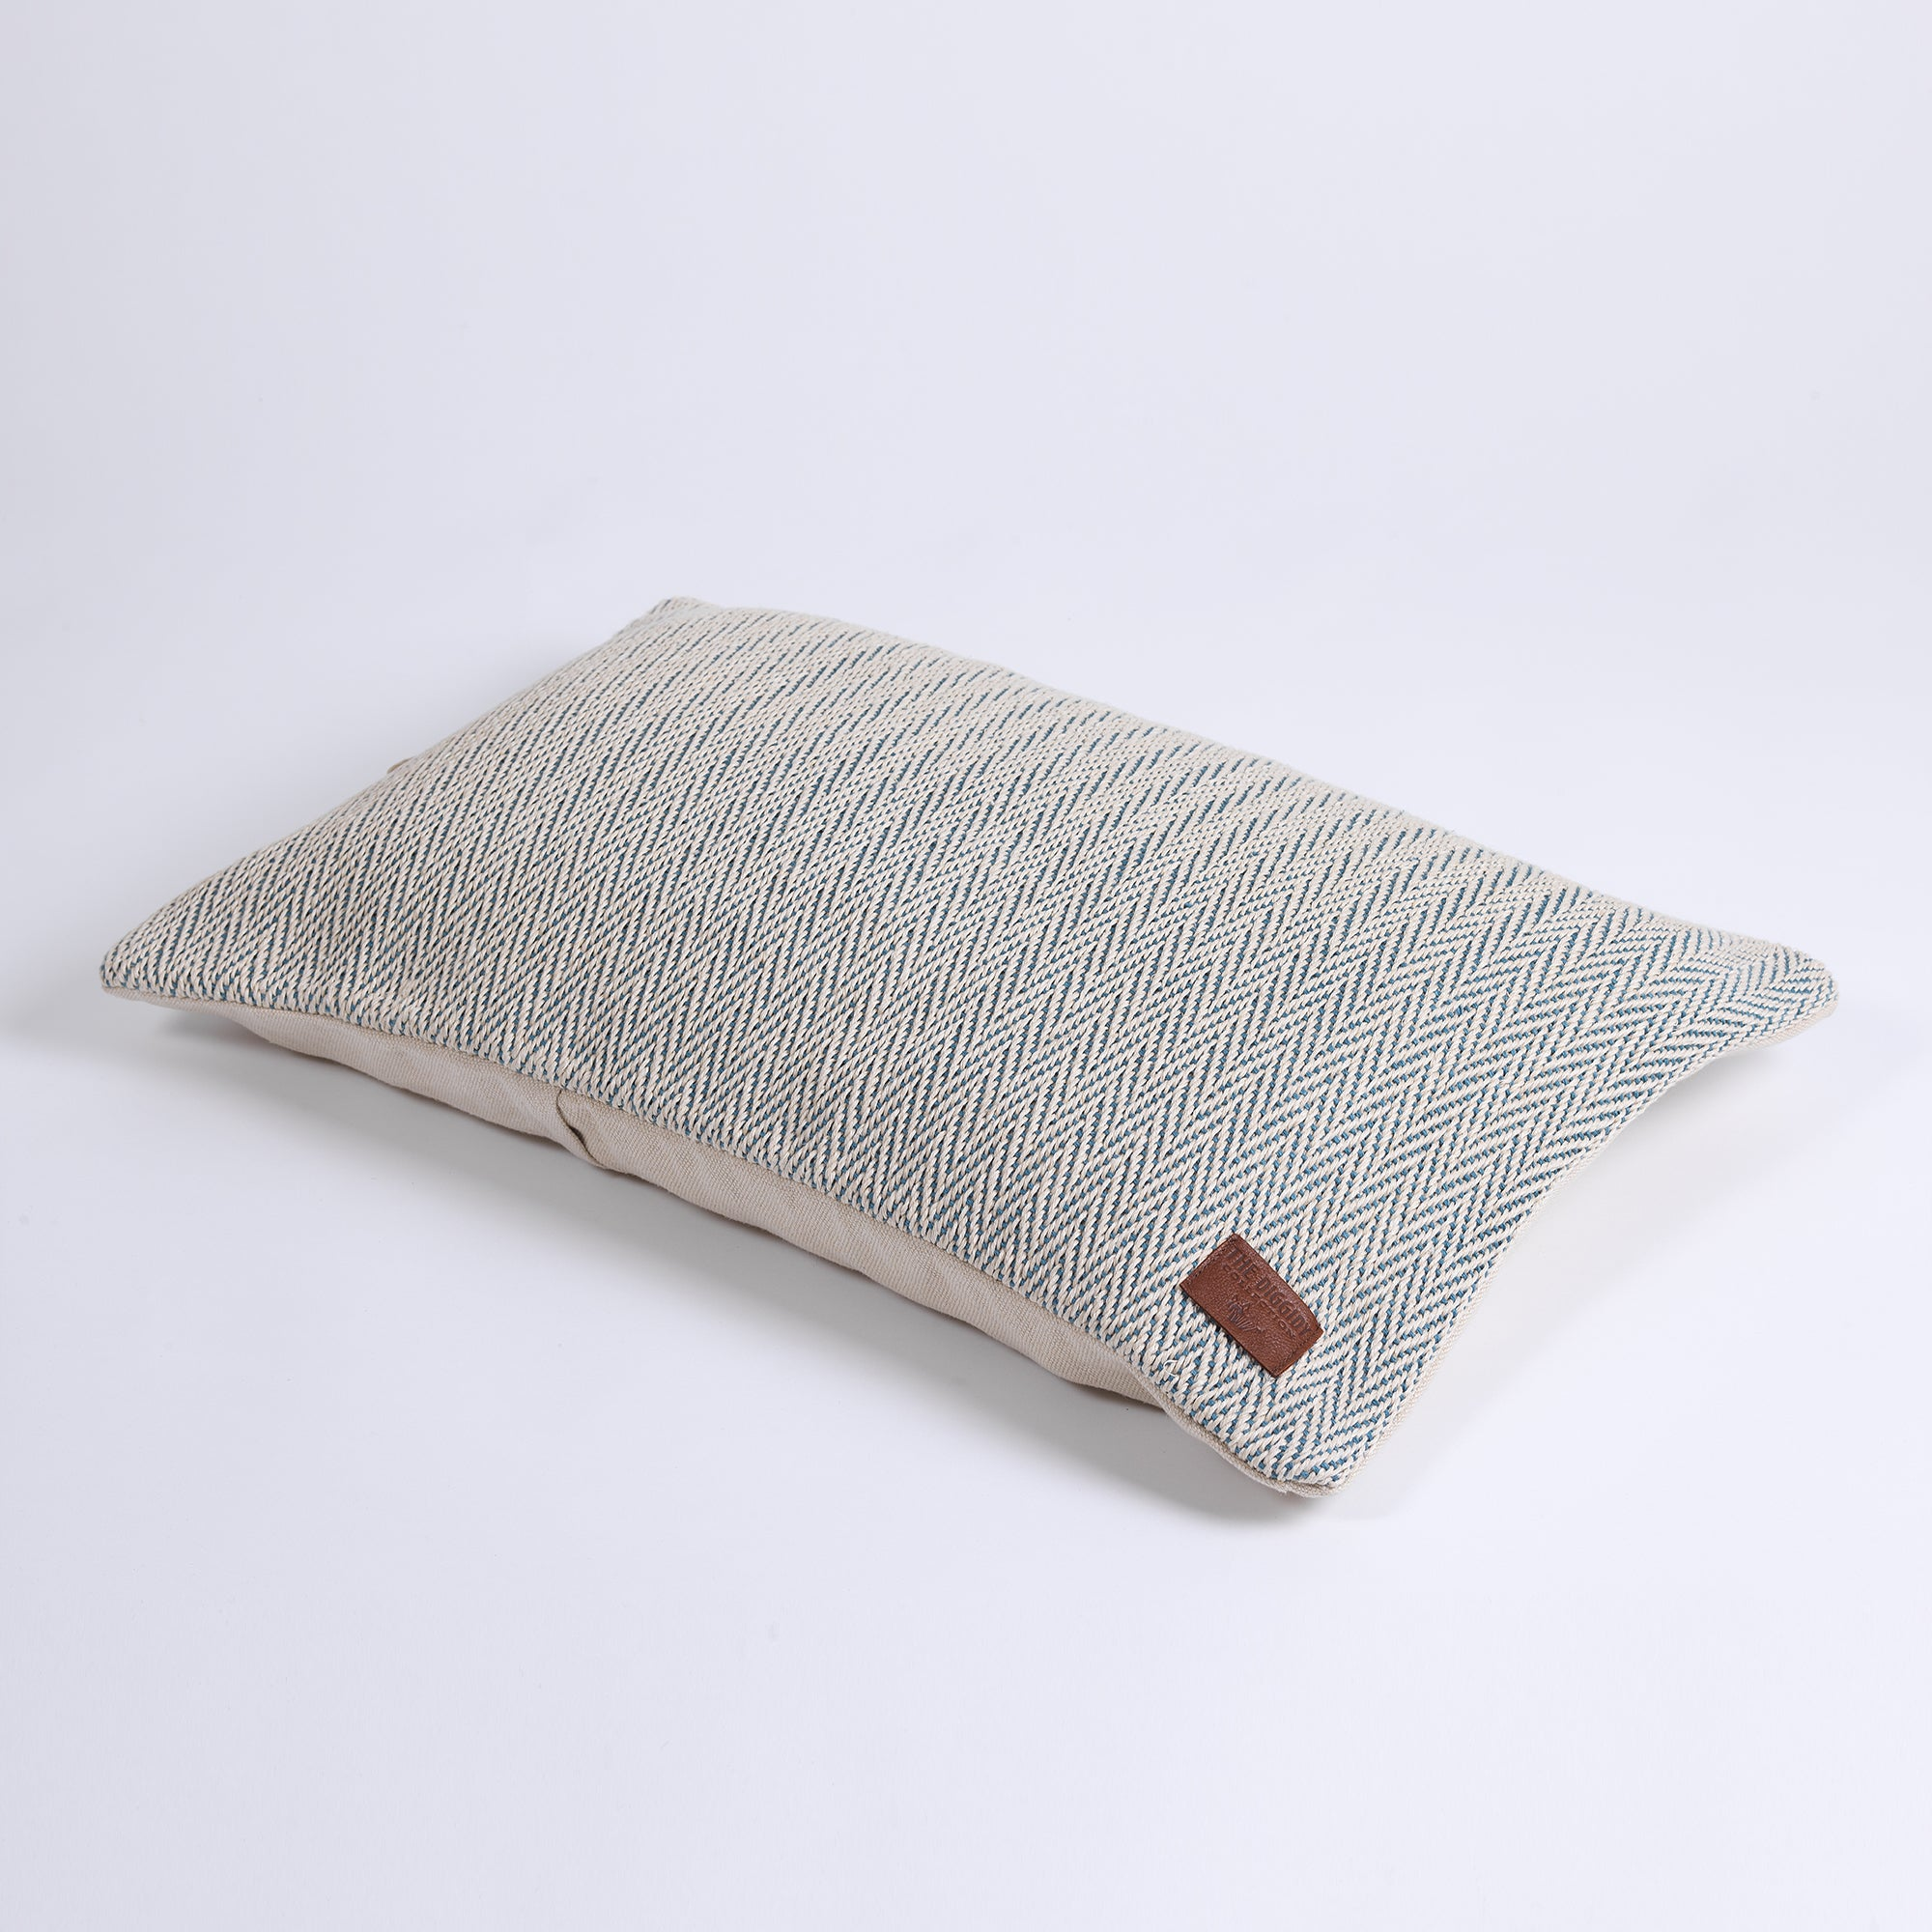 DC Herringbone Hemp Pillow Cover blue